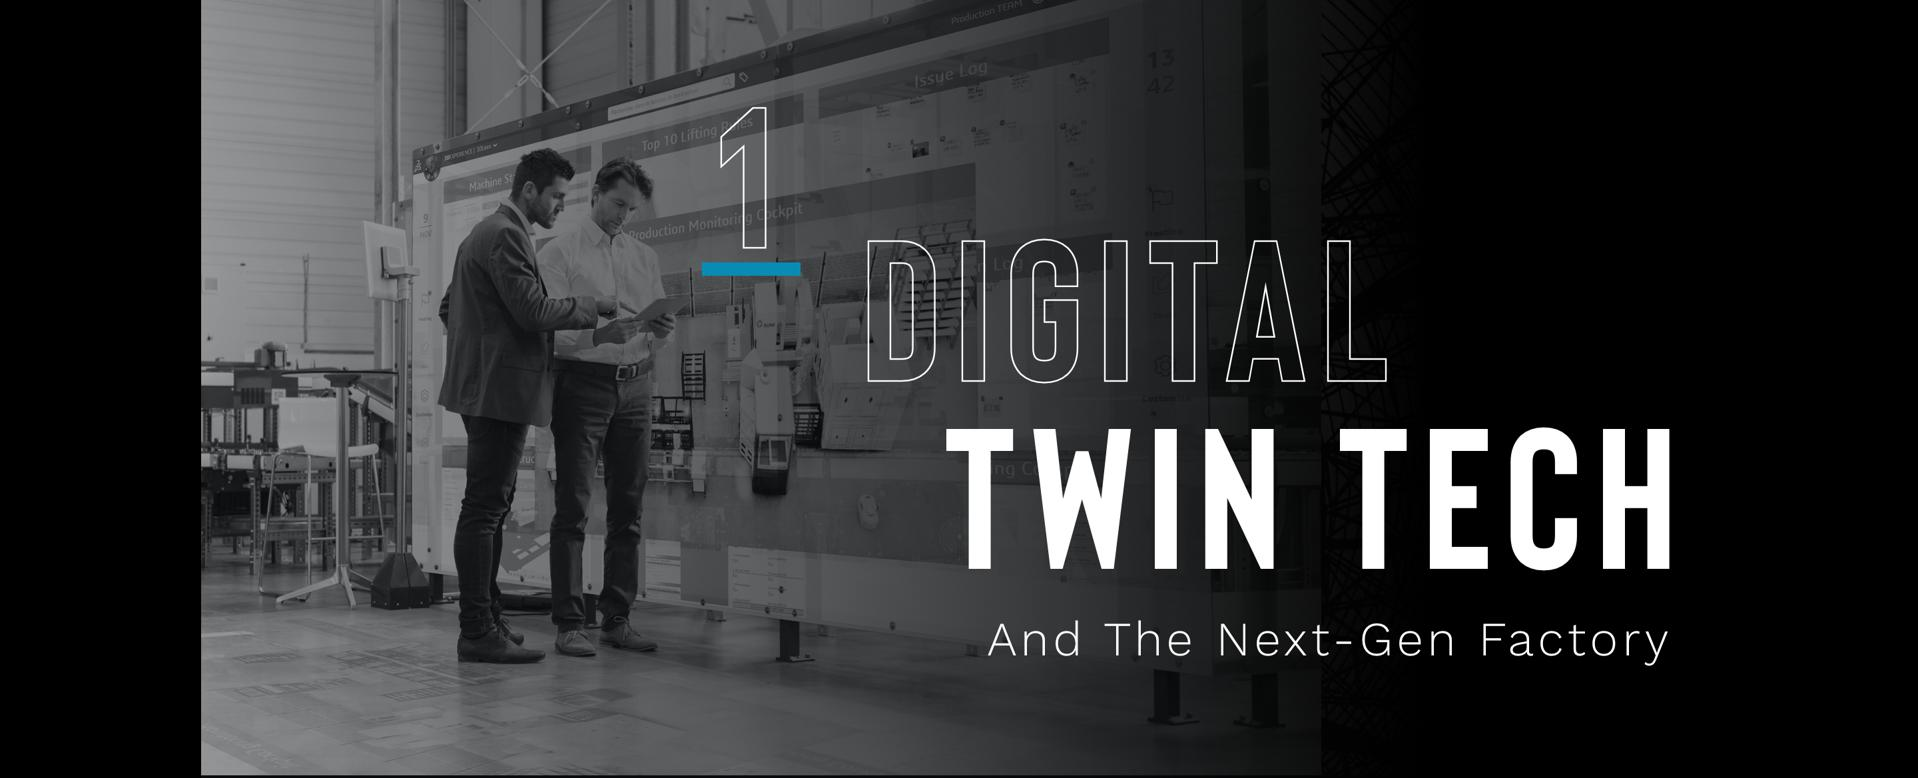 1 Digital Twin Tech and The Next-Gen Factory